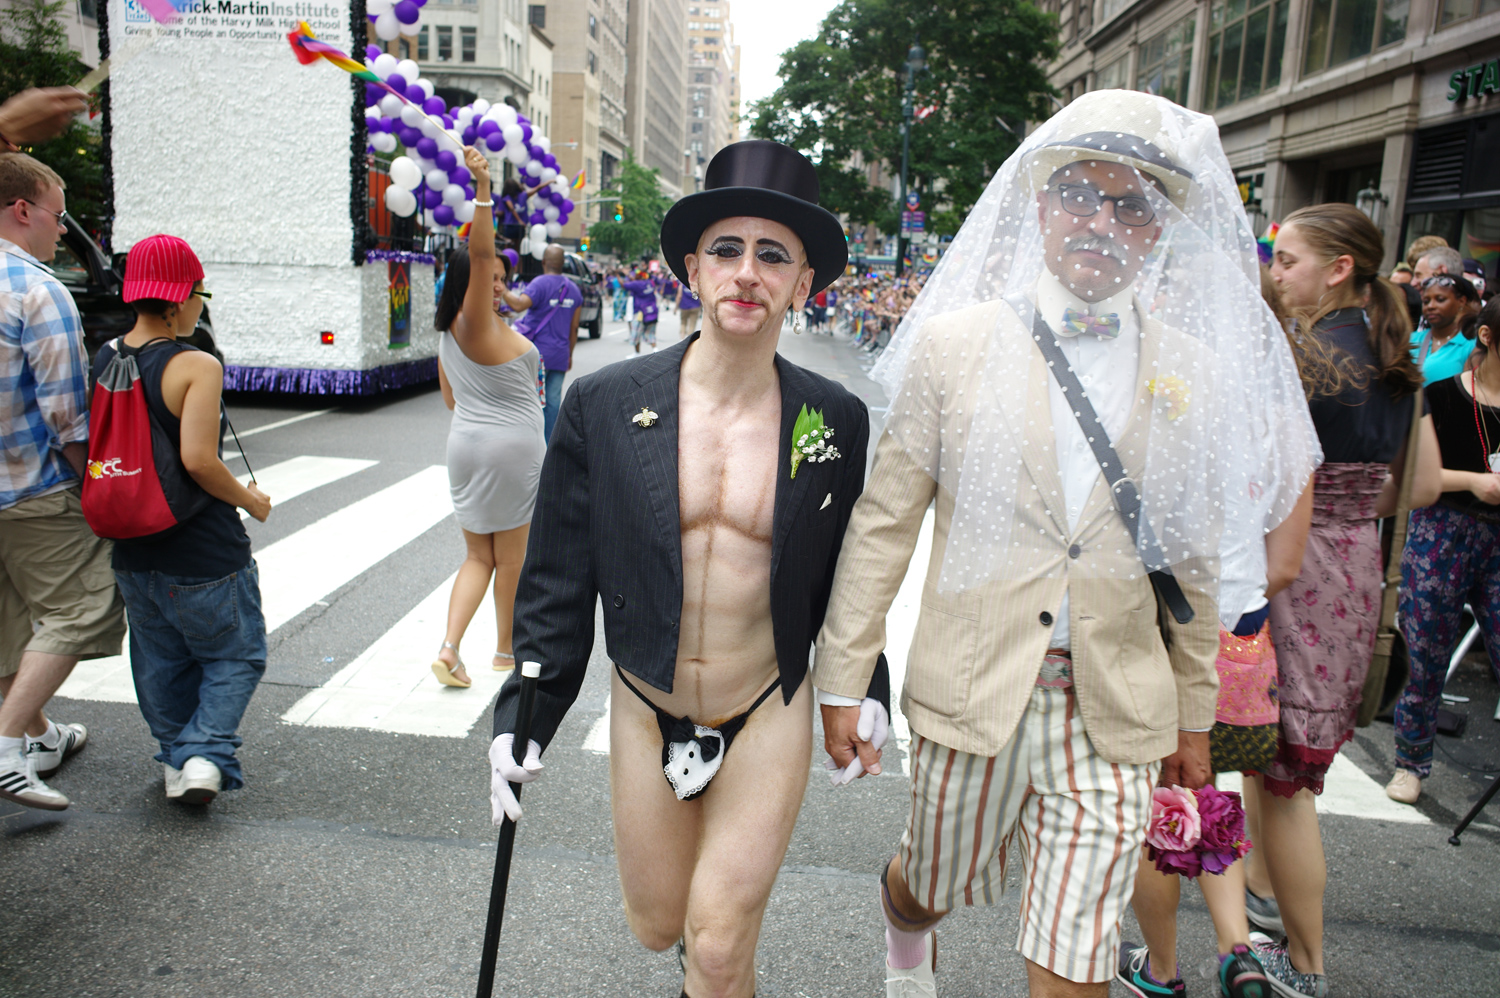 Marchers celebrating the right to marry, June 26, 2011.